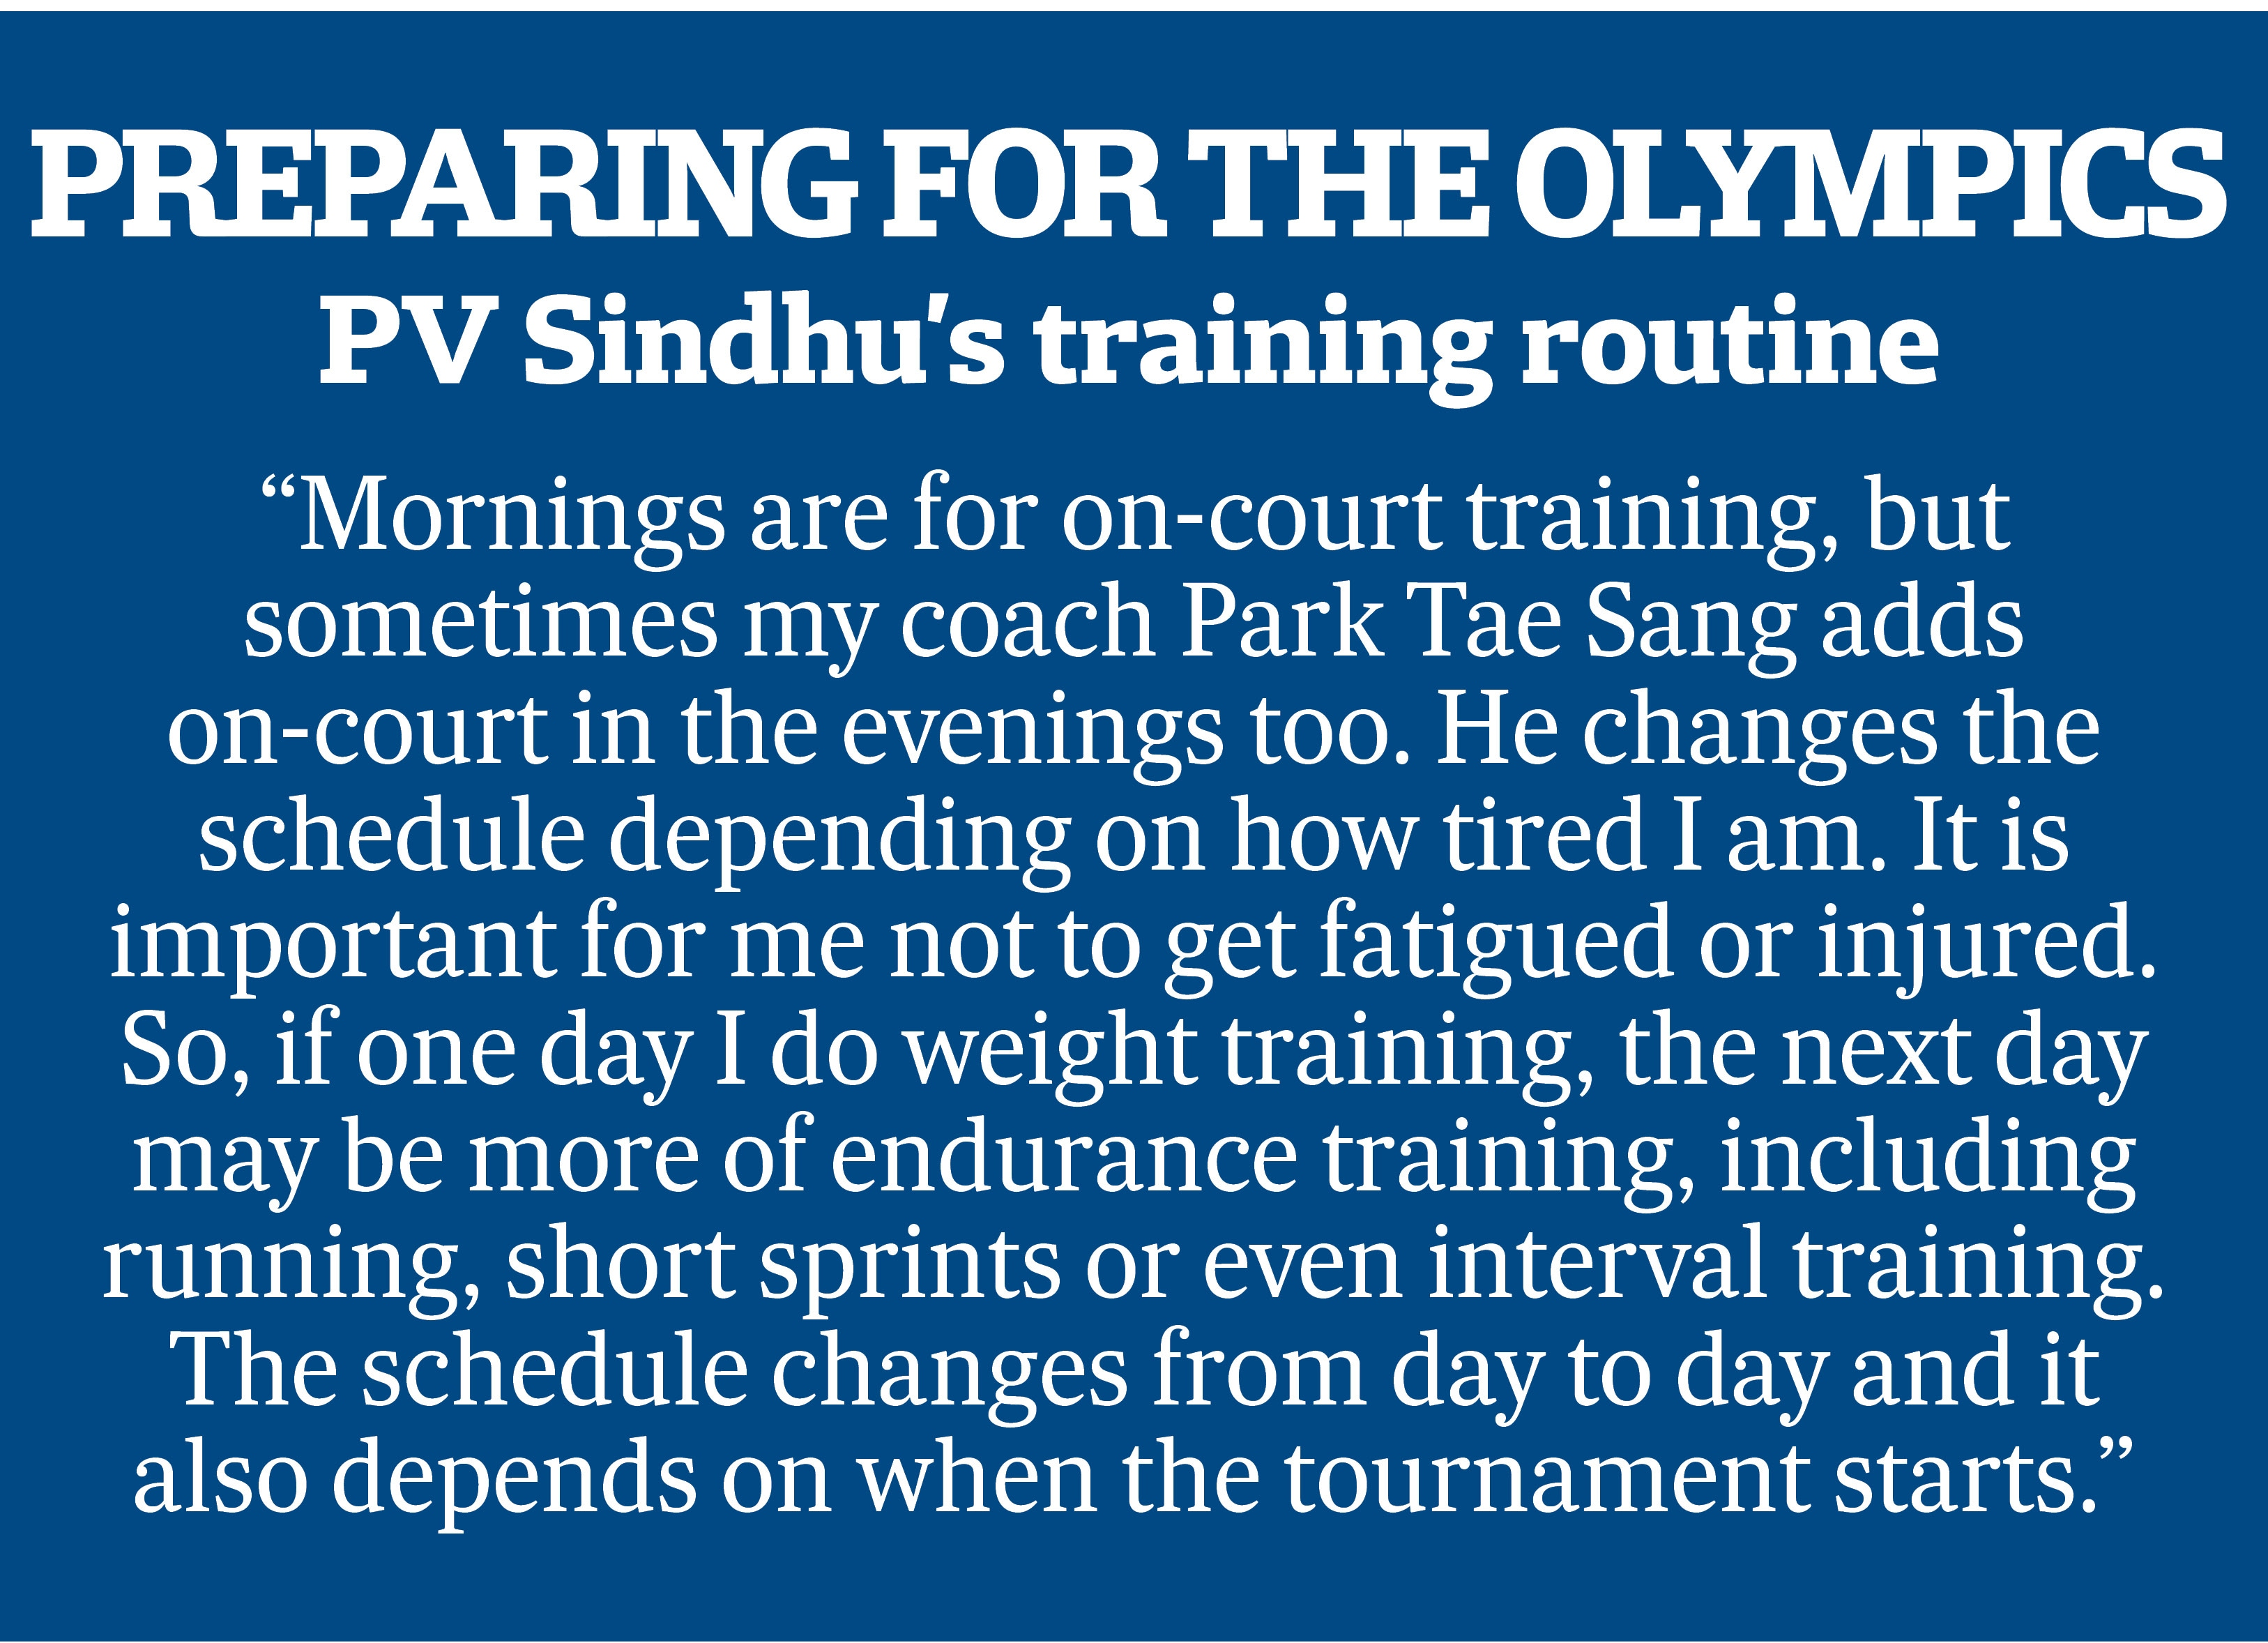 PV Sindhu prepares for the Olympic Games